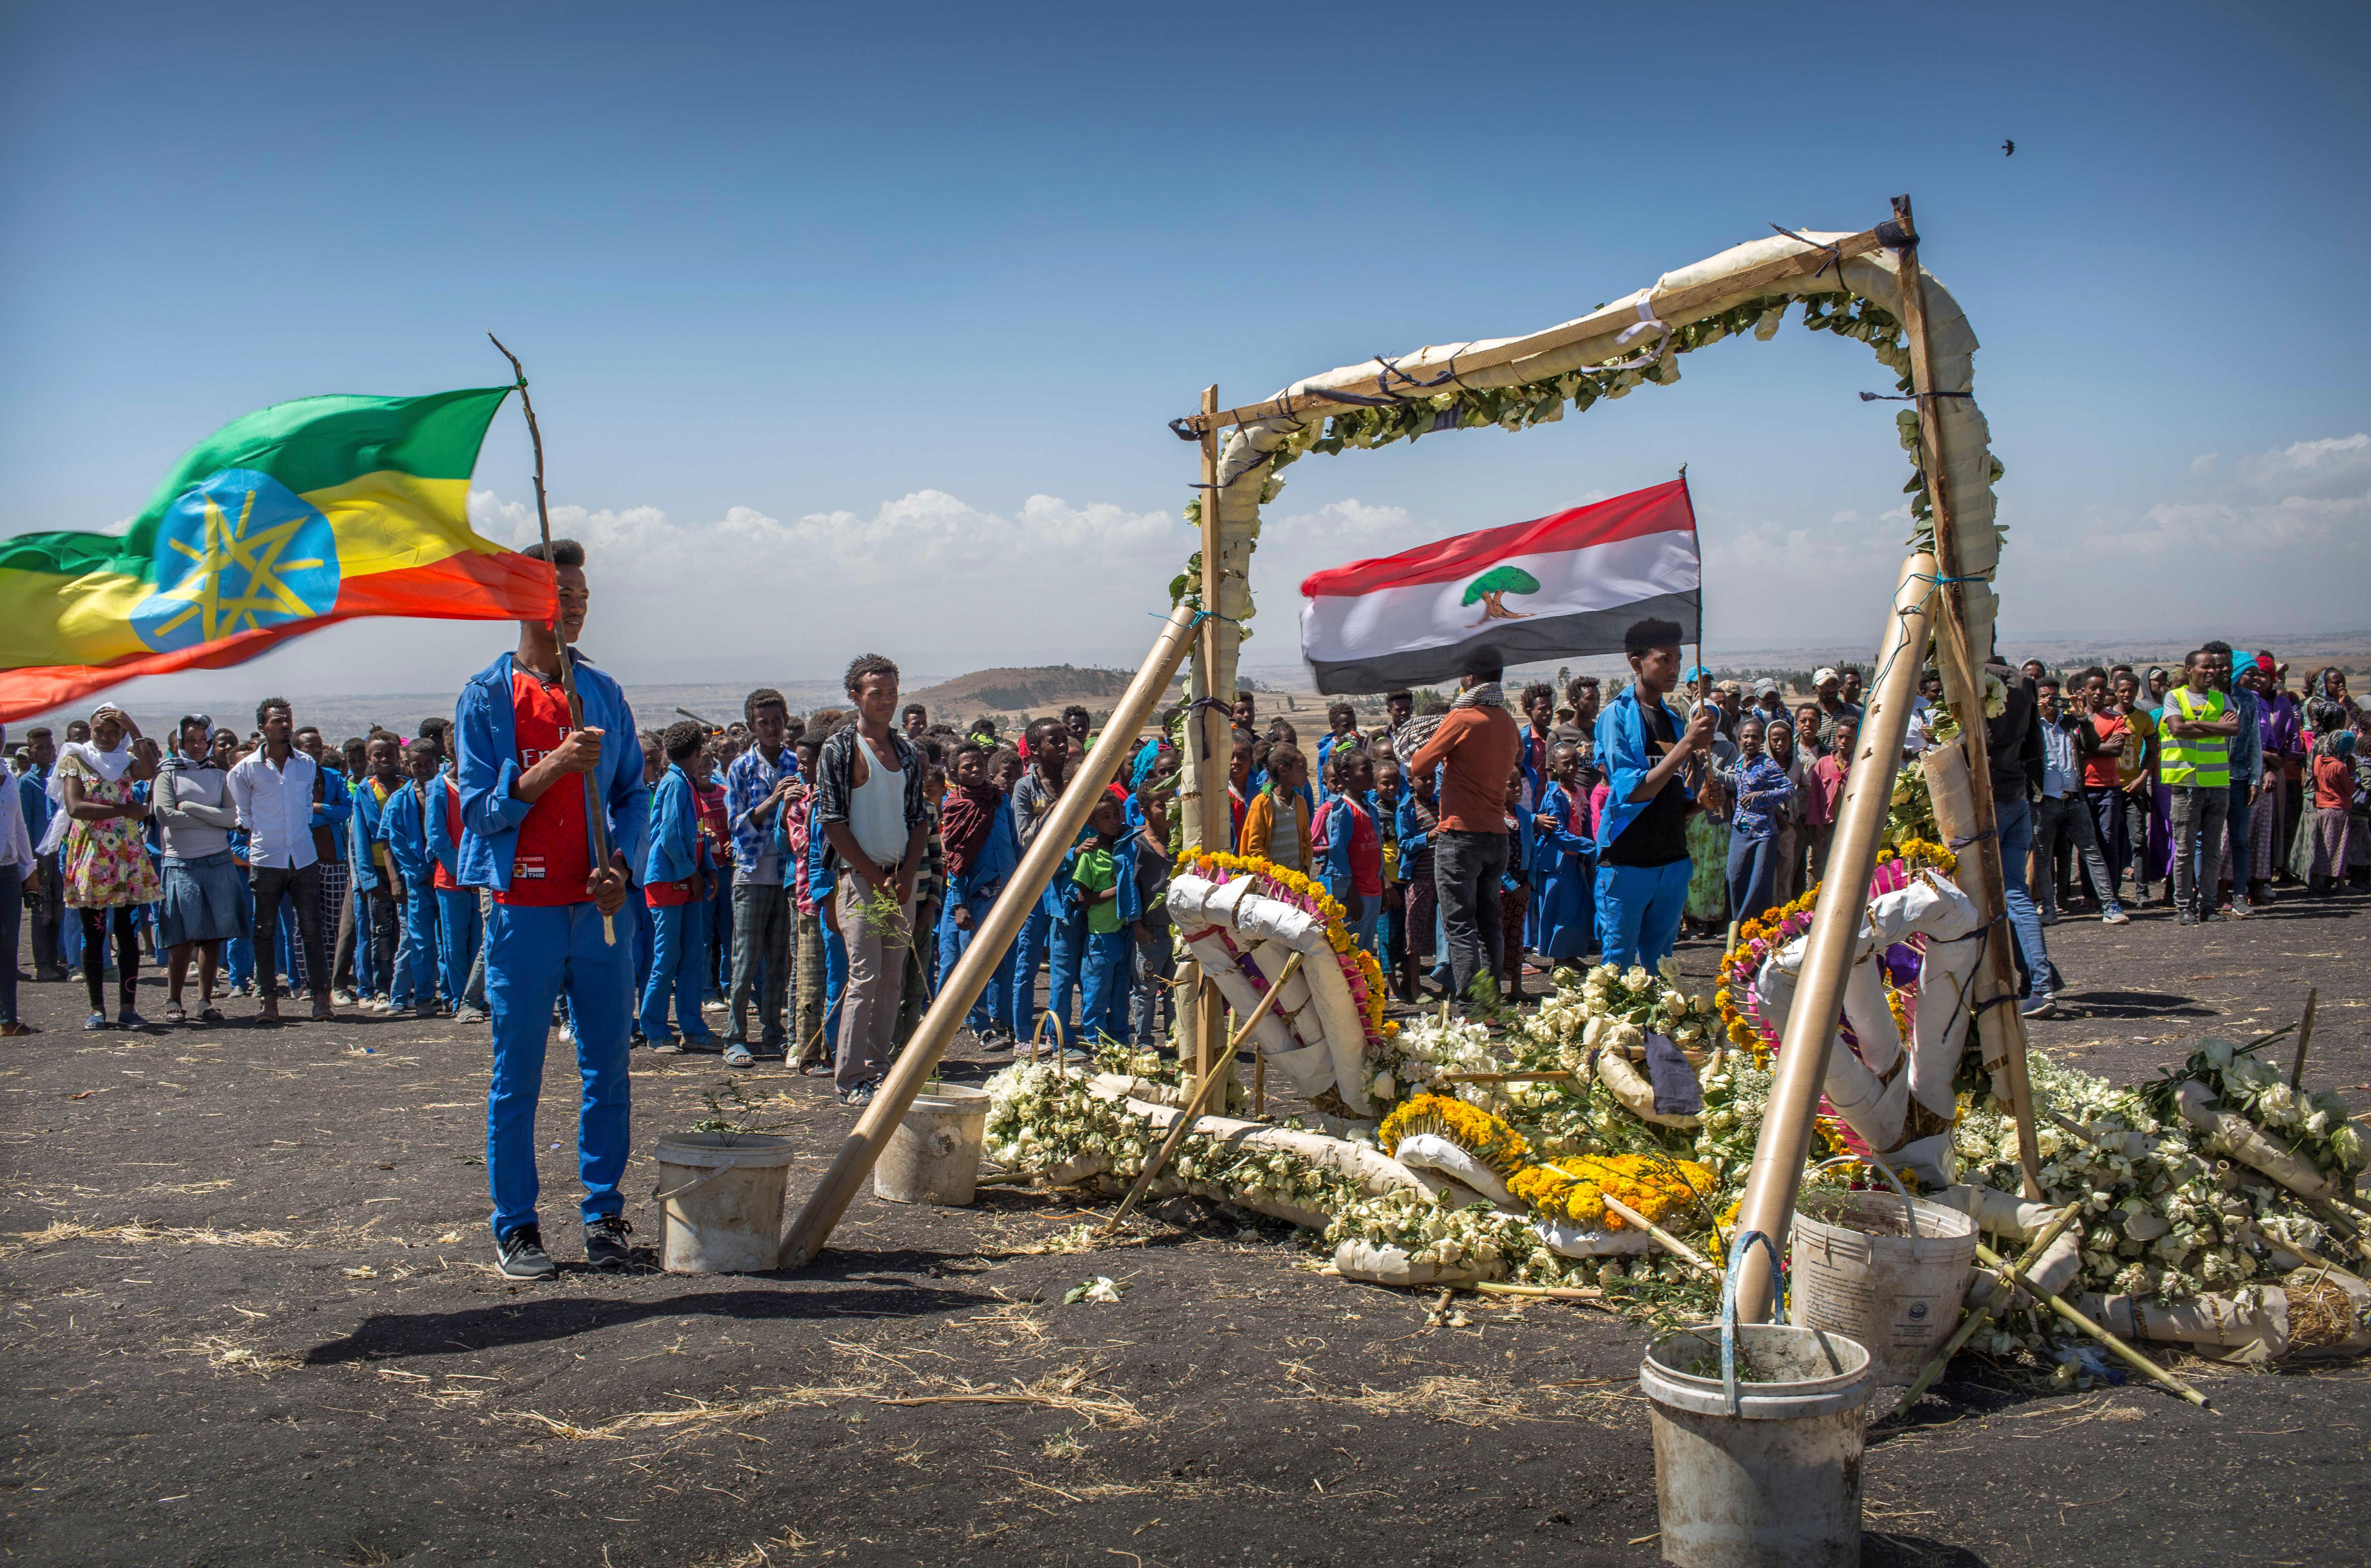 Students from Hama elementary school, who walked an hour and a half from their school in the surrounding area to pay their respects, stand next to floral tributes at the scene where the Ethiopian Airlines Boeing 737 Max 8 crashed shortly after takeoff on Sunday killing all 157 on board, near Bishoftu, south-east of Addis Ababa, in Ethiopia Friday, March 15, 2019. (AP Photo/Mulugeta Ayene)